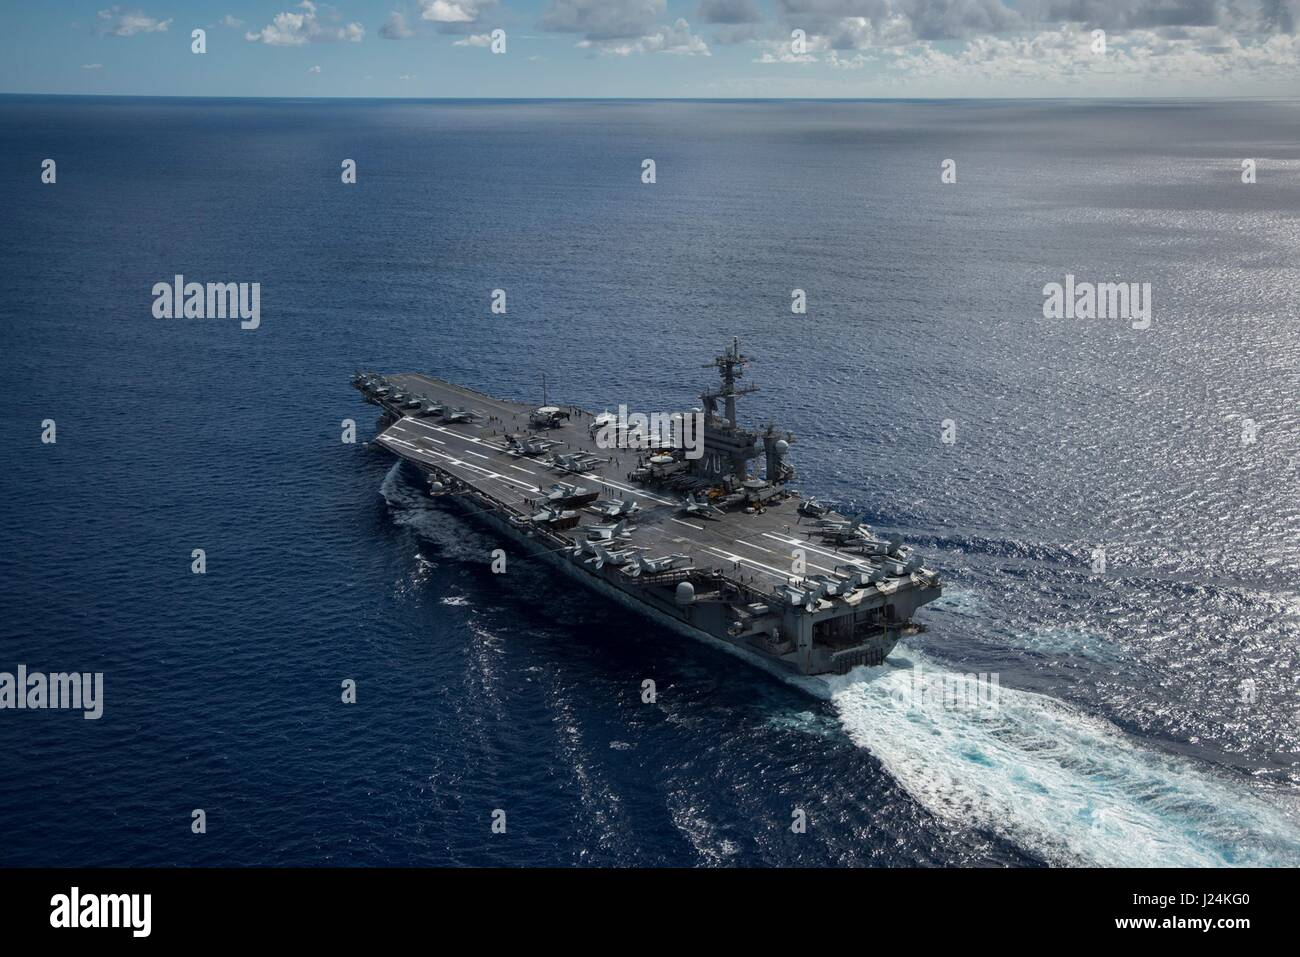 Philippine Sea. 24th Apr, 2017. The U.S. Navy Nimitz-class aircraft carrier USS Carl Vinson transits the Philippine - Stock Image